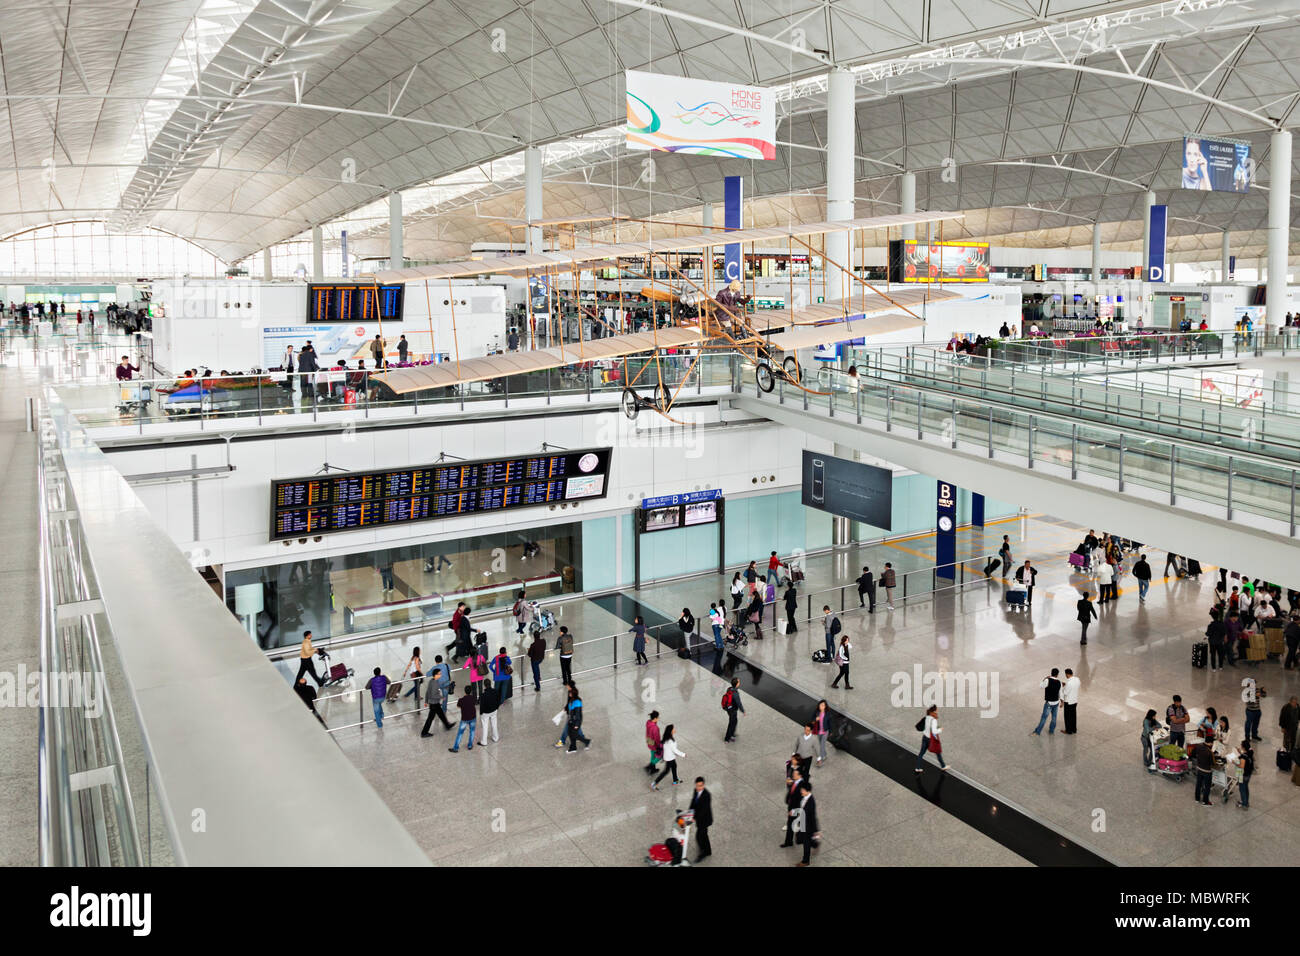 HONG KONG, CHINA - FEBRUARY 21: Passengers in the airport main lobby on February 21, 2013 in Hong Kong, China. The Hong Kong airport handles more than - Stock Image